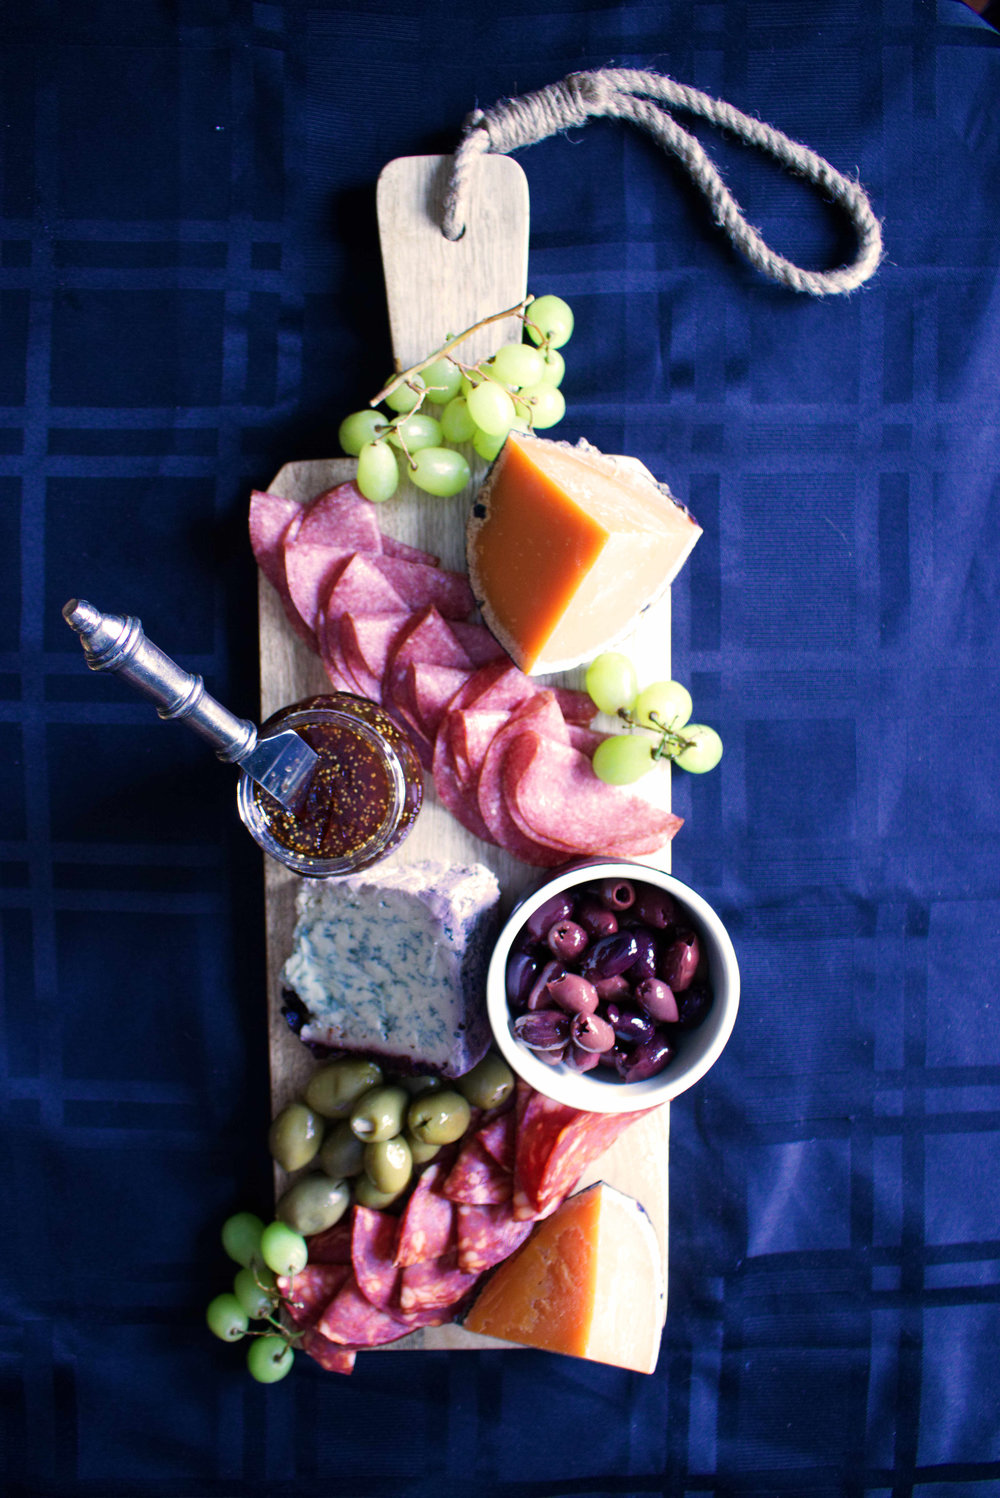 Just 1 of many charcuterie boards we had Christmas Morning.